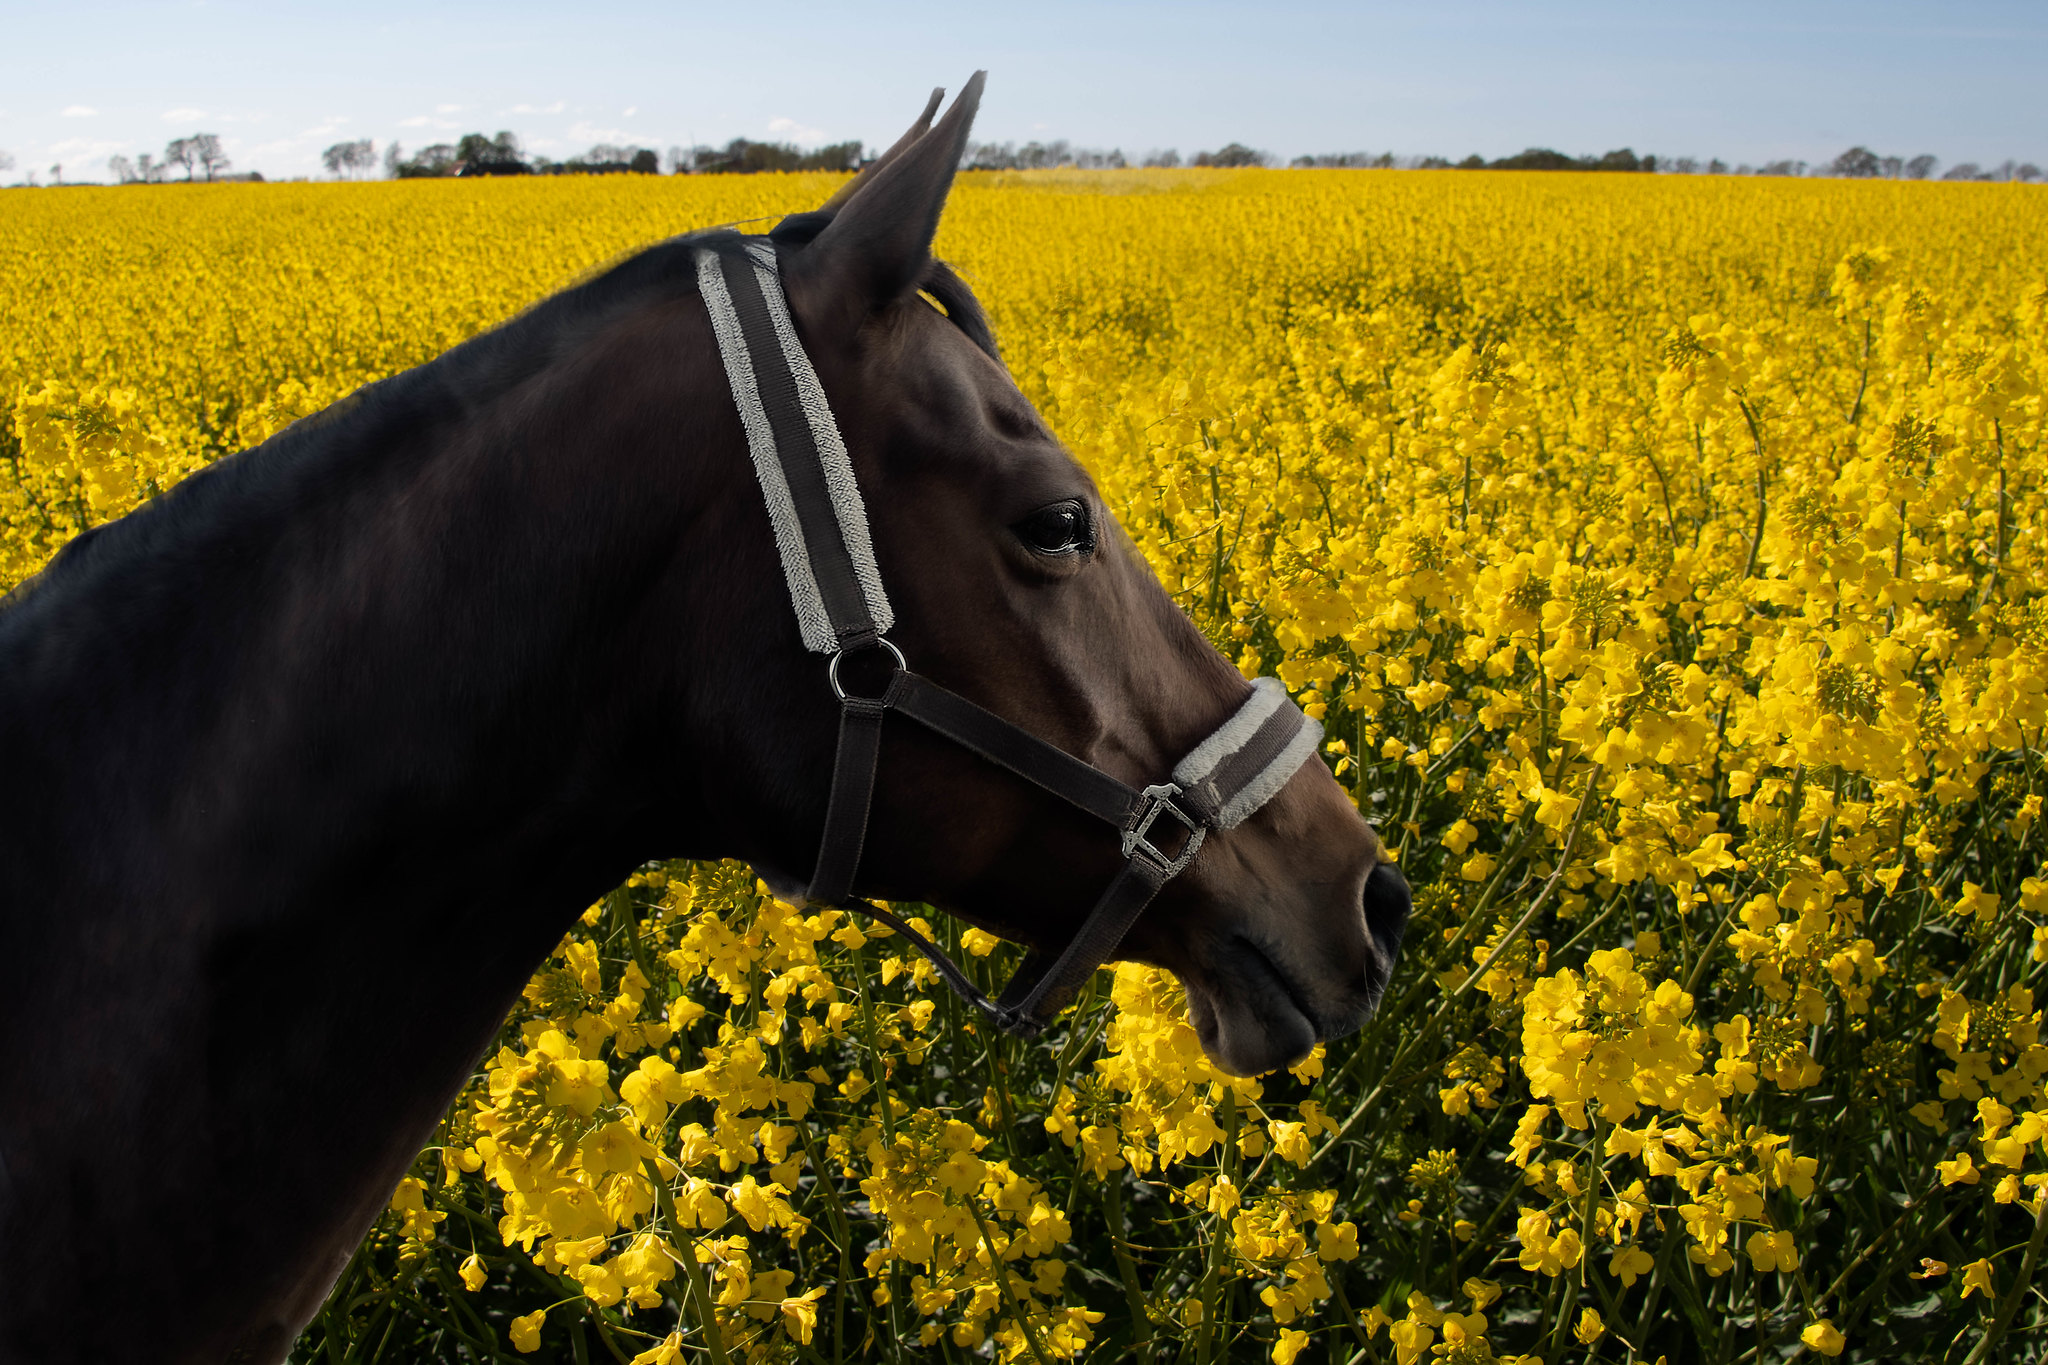 Yellow mustard fields horse view.jpg